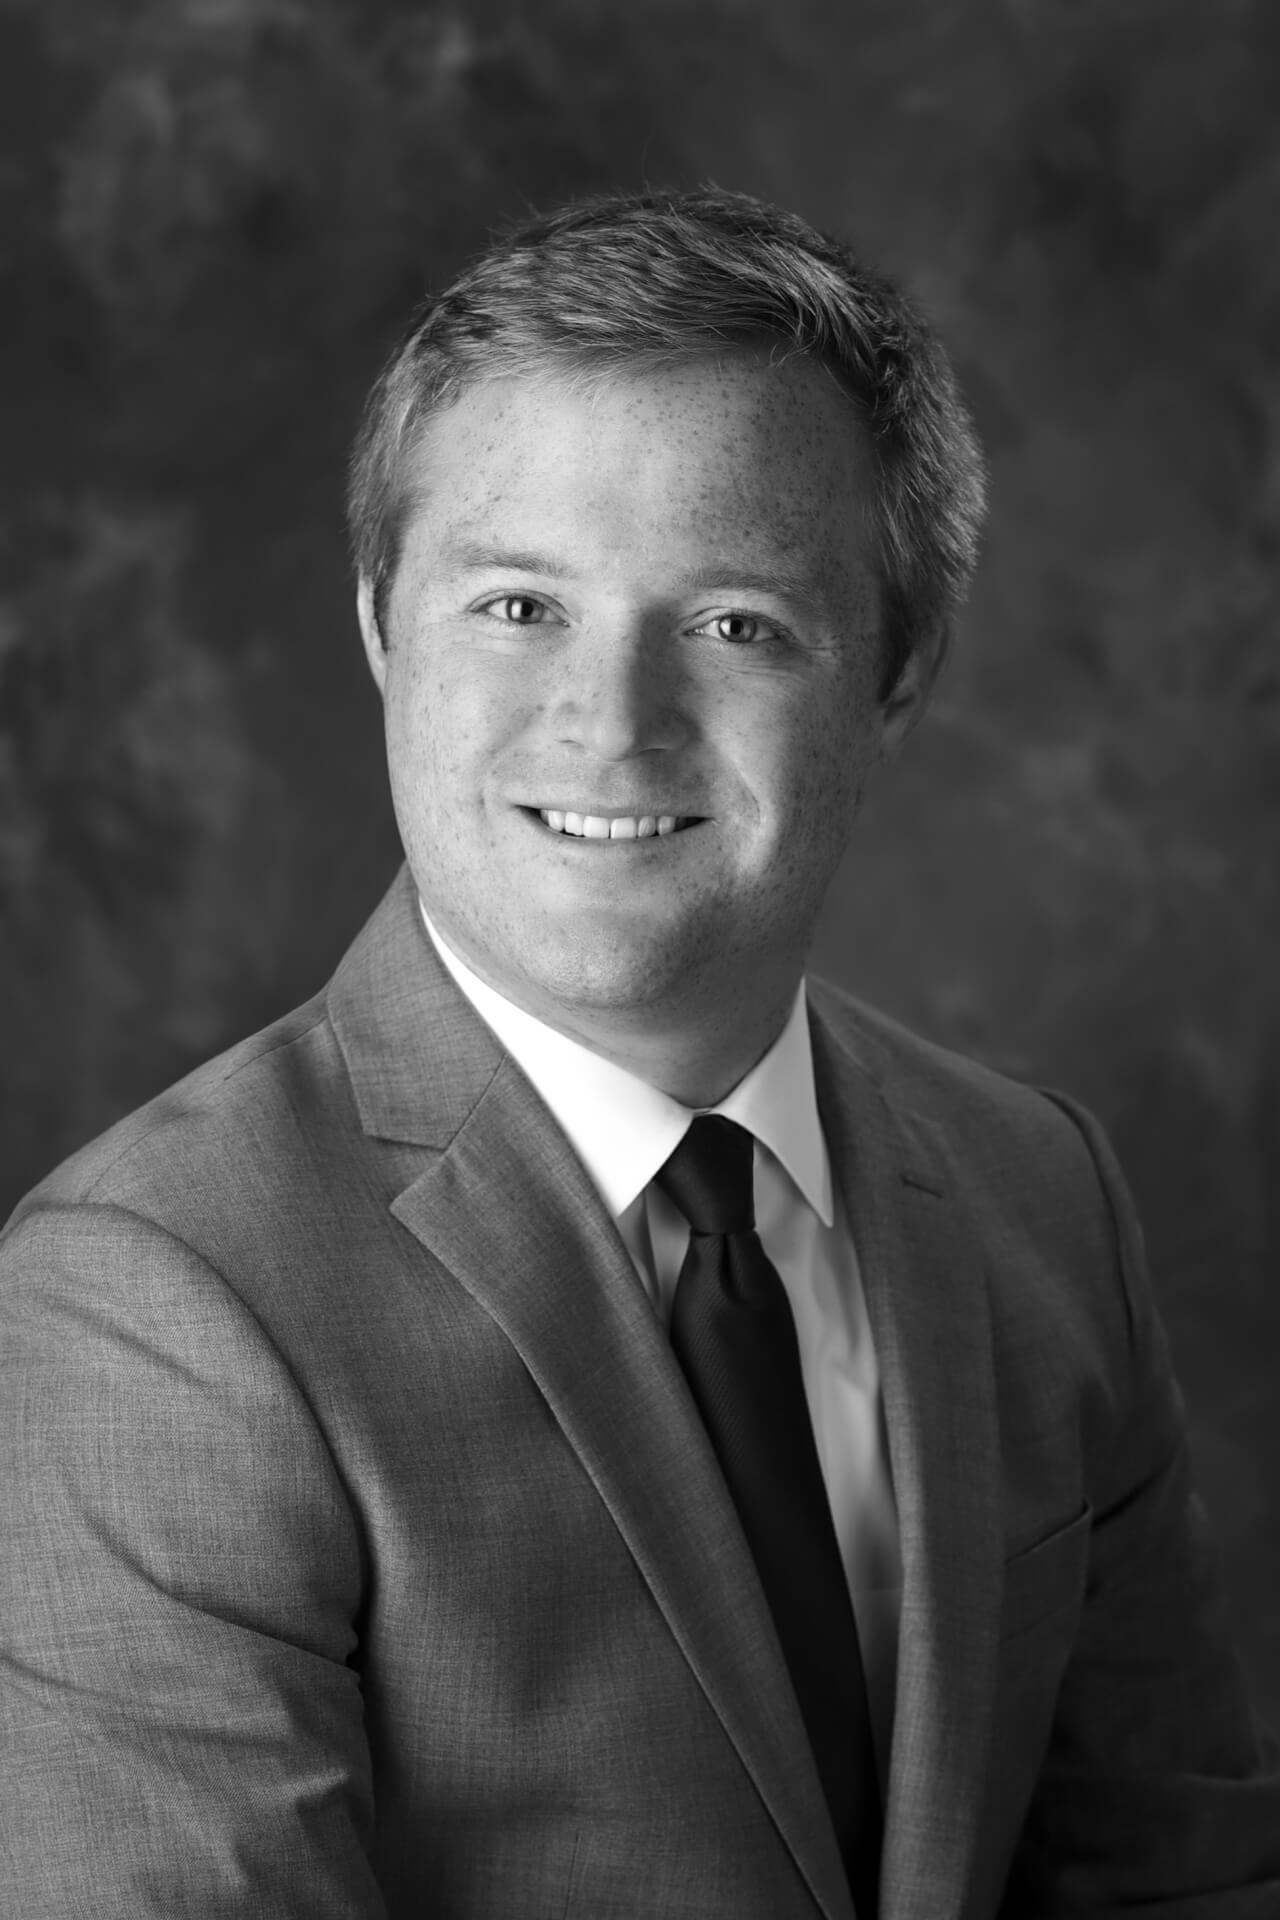 Steve Nebbia + Tax Manager in Omaha, NE - Lutz Accounting